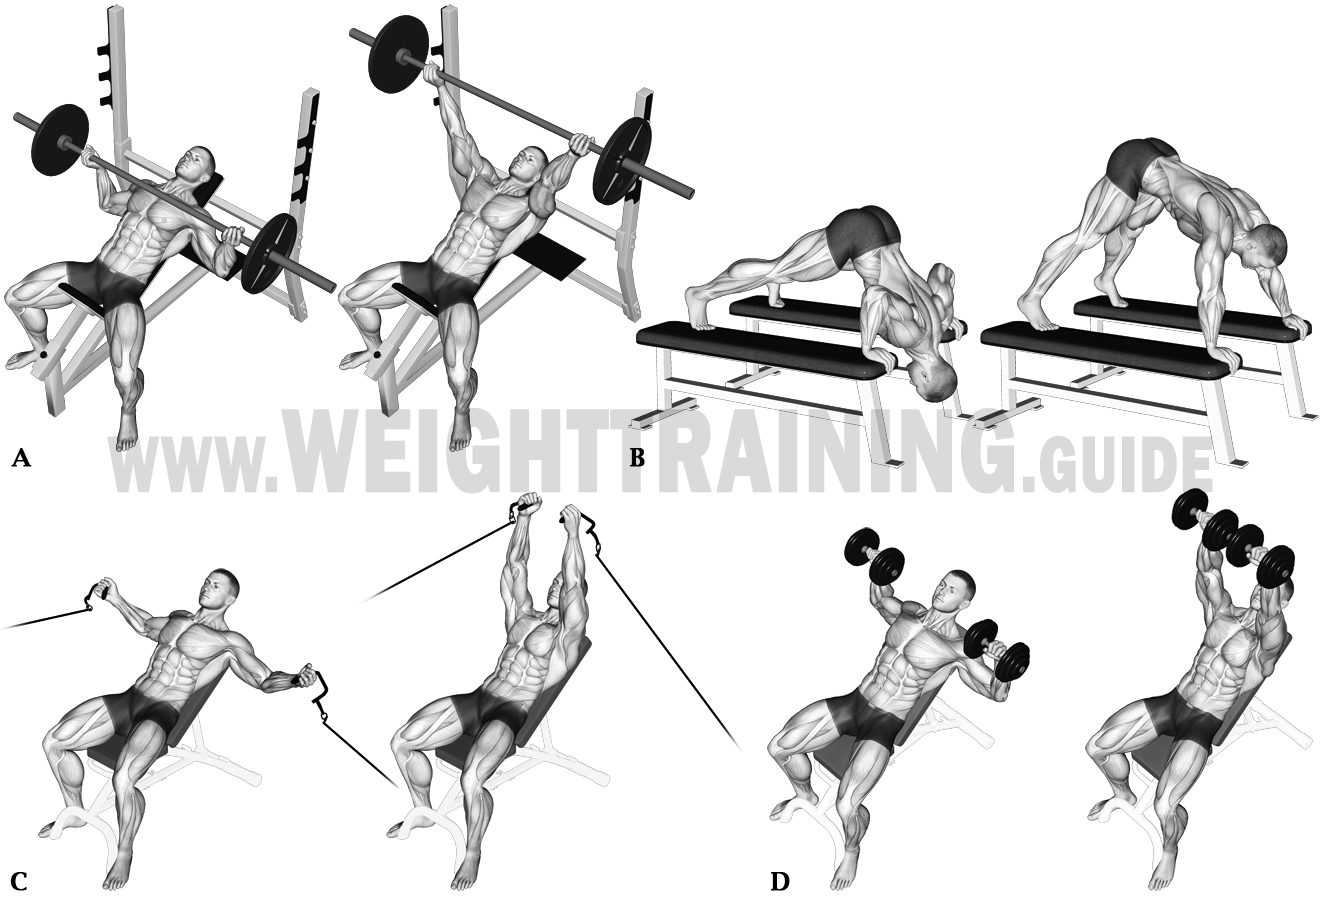 Horizontal pushing exercises, obtuse